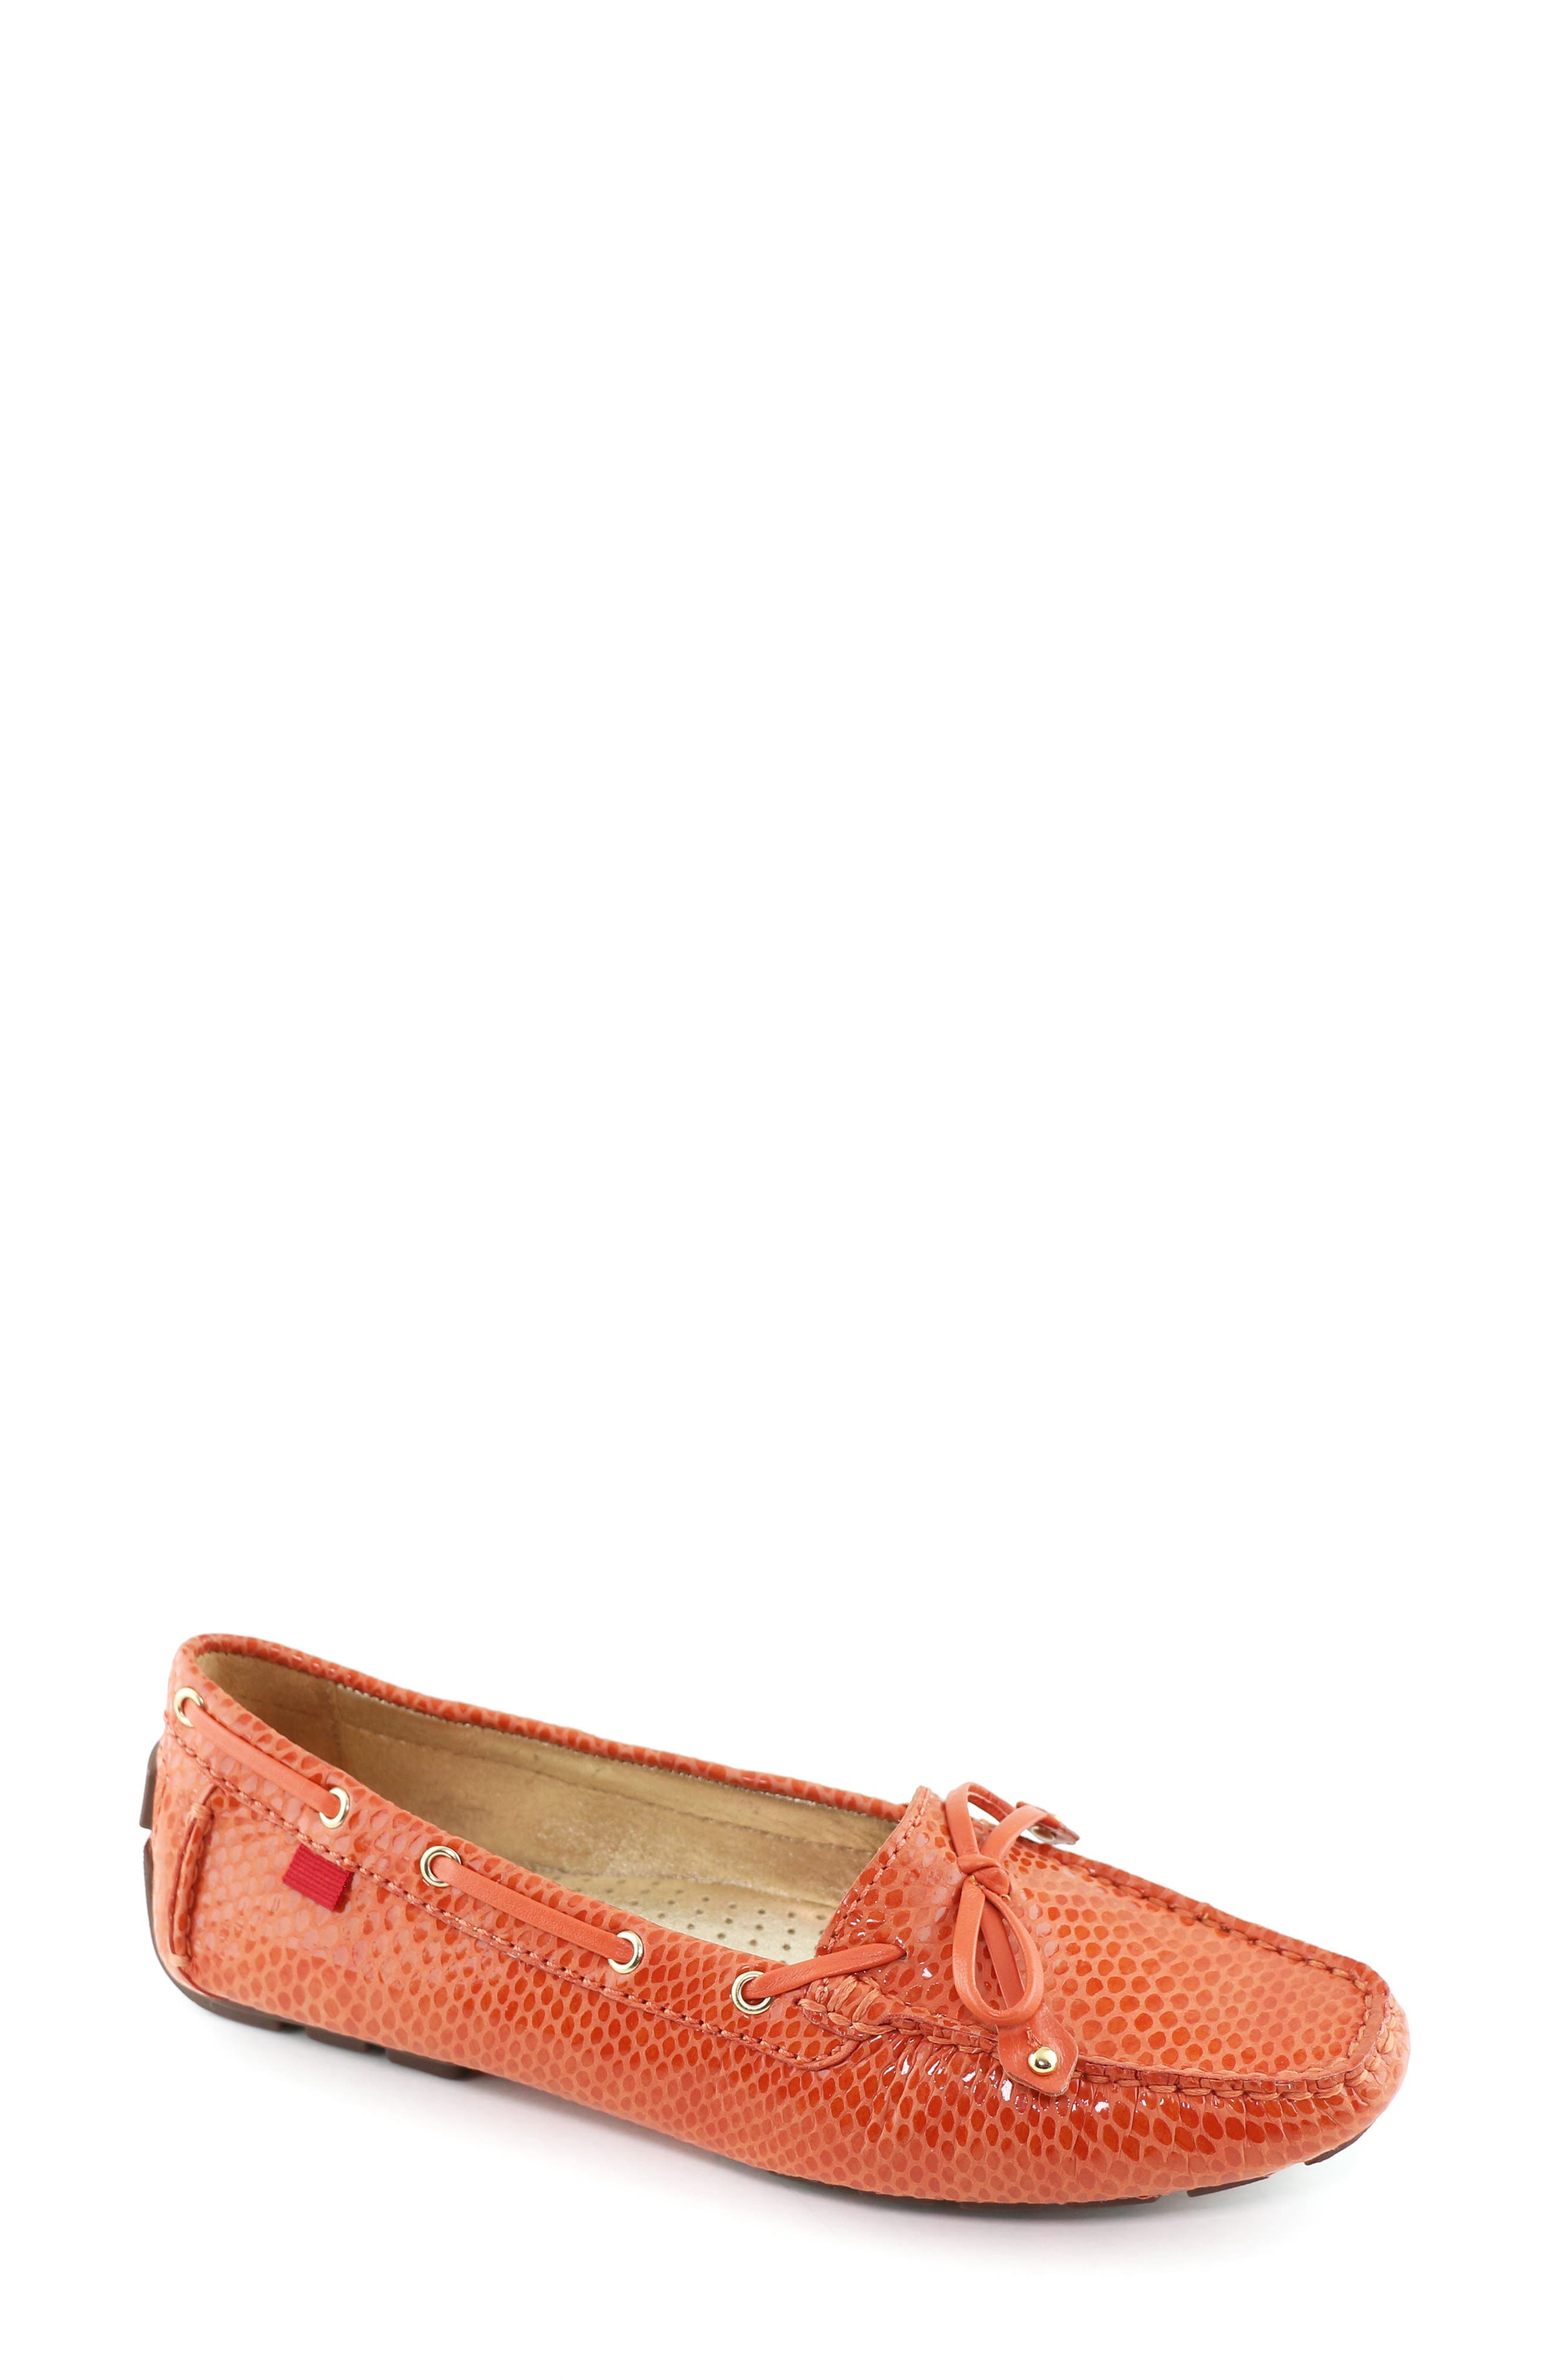 MARC JOSEPH NEW YORK,                             'Cypress Hill' Loafer,                             Main thumbnail 1, color,                             CORAL SNAKE PRINT LEATHER